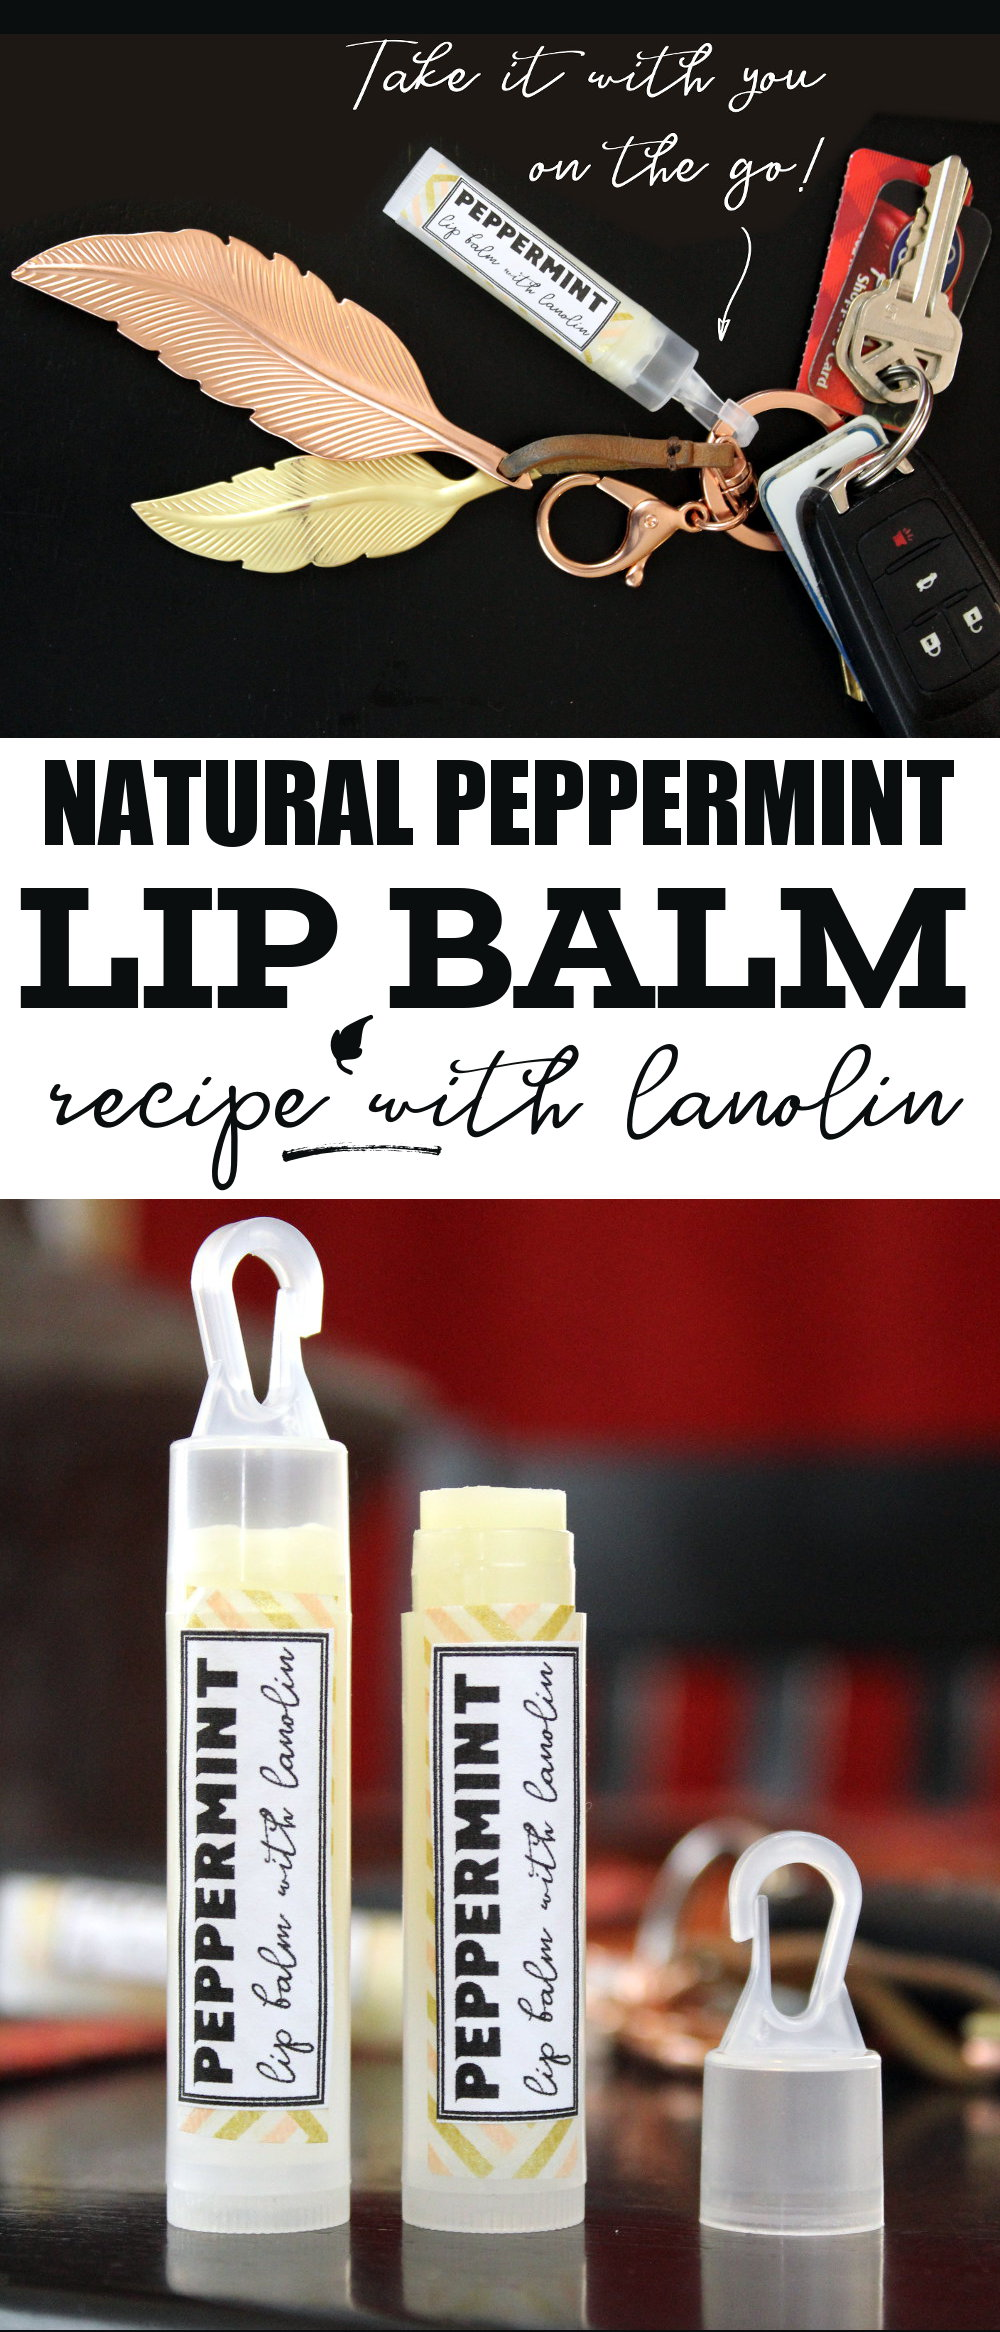 Best Peppermint Lip Balm Recipe! This natural peppermint lip balm recipe is crafted using only natural ingredients that work in tandem to promote skin health. You'll love the velvety smooth glide of this lip balm almost as much as its ability to soothe, moisturize and protect dry or chapped lips. While super awesome lip balm tubes with hooked caps mean you always have that protection at your fingertips wherever the day takes you. #diy #lipbalm #lipbalmrecipe #natural #naturalskincare #skinhealth #beauty #naturalbeauty #peppermint #crafts #winter